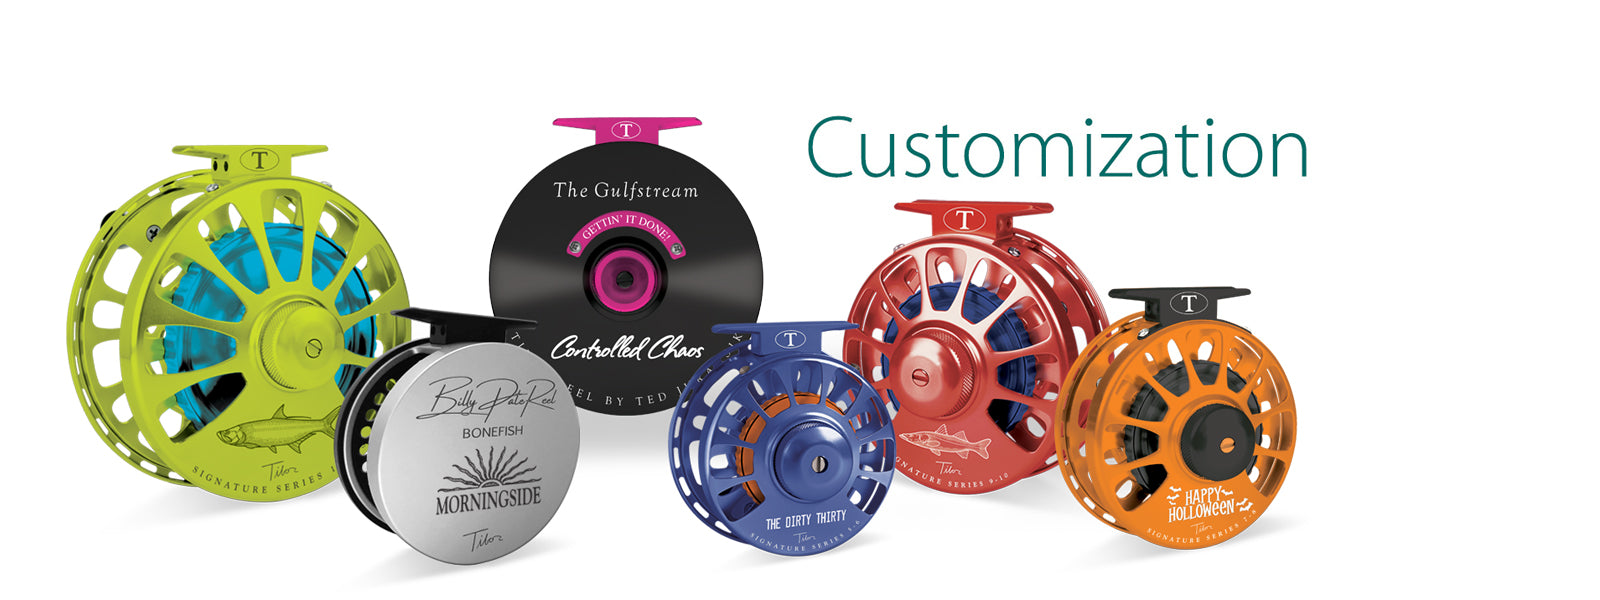 Customize your Reel